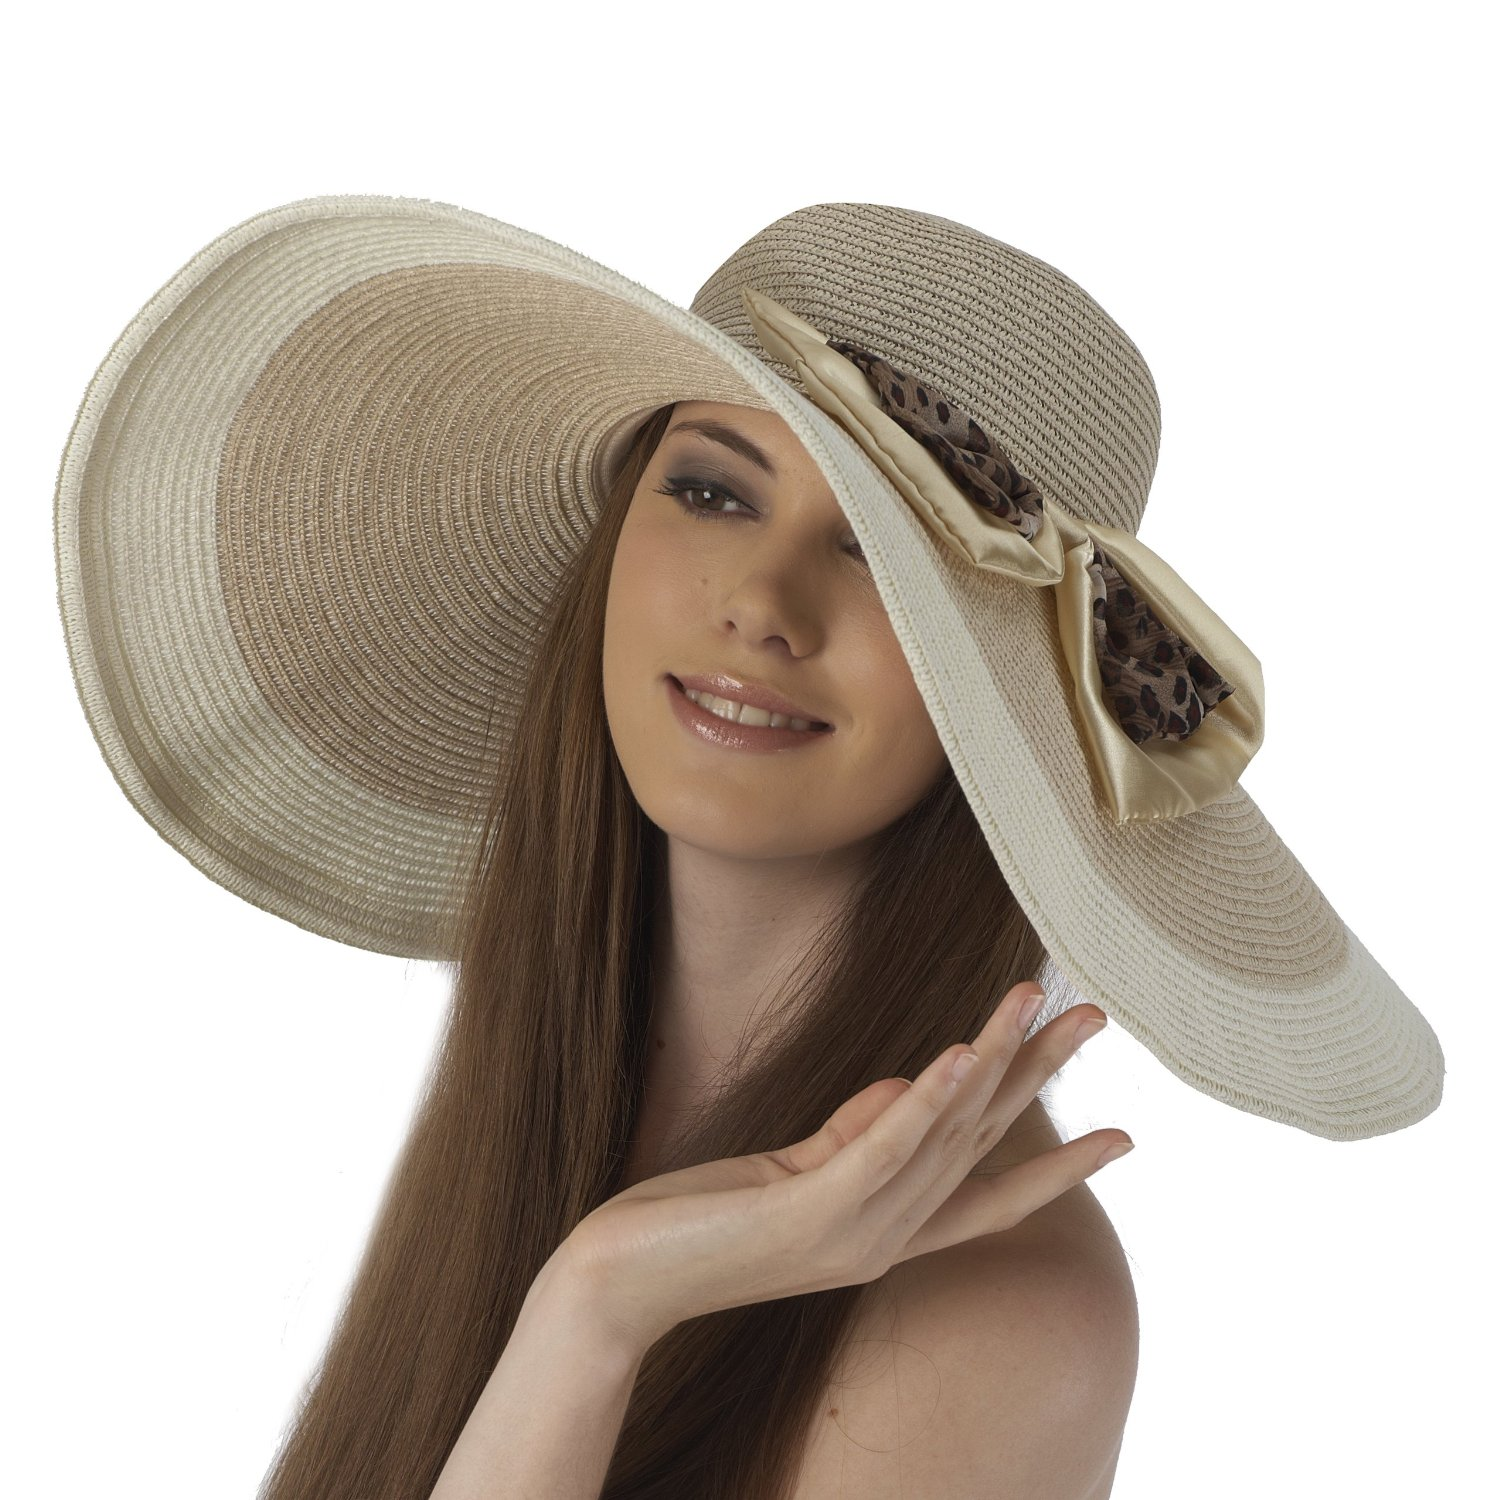 Spring/Summer Hats. New! Our Reversible, Packable, SunGuard % cotton hat! 2 beautiful hats for the price of one! All of our warm weather hats give full coverage and most are offered in 2 sizes.